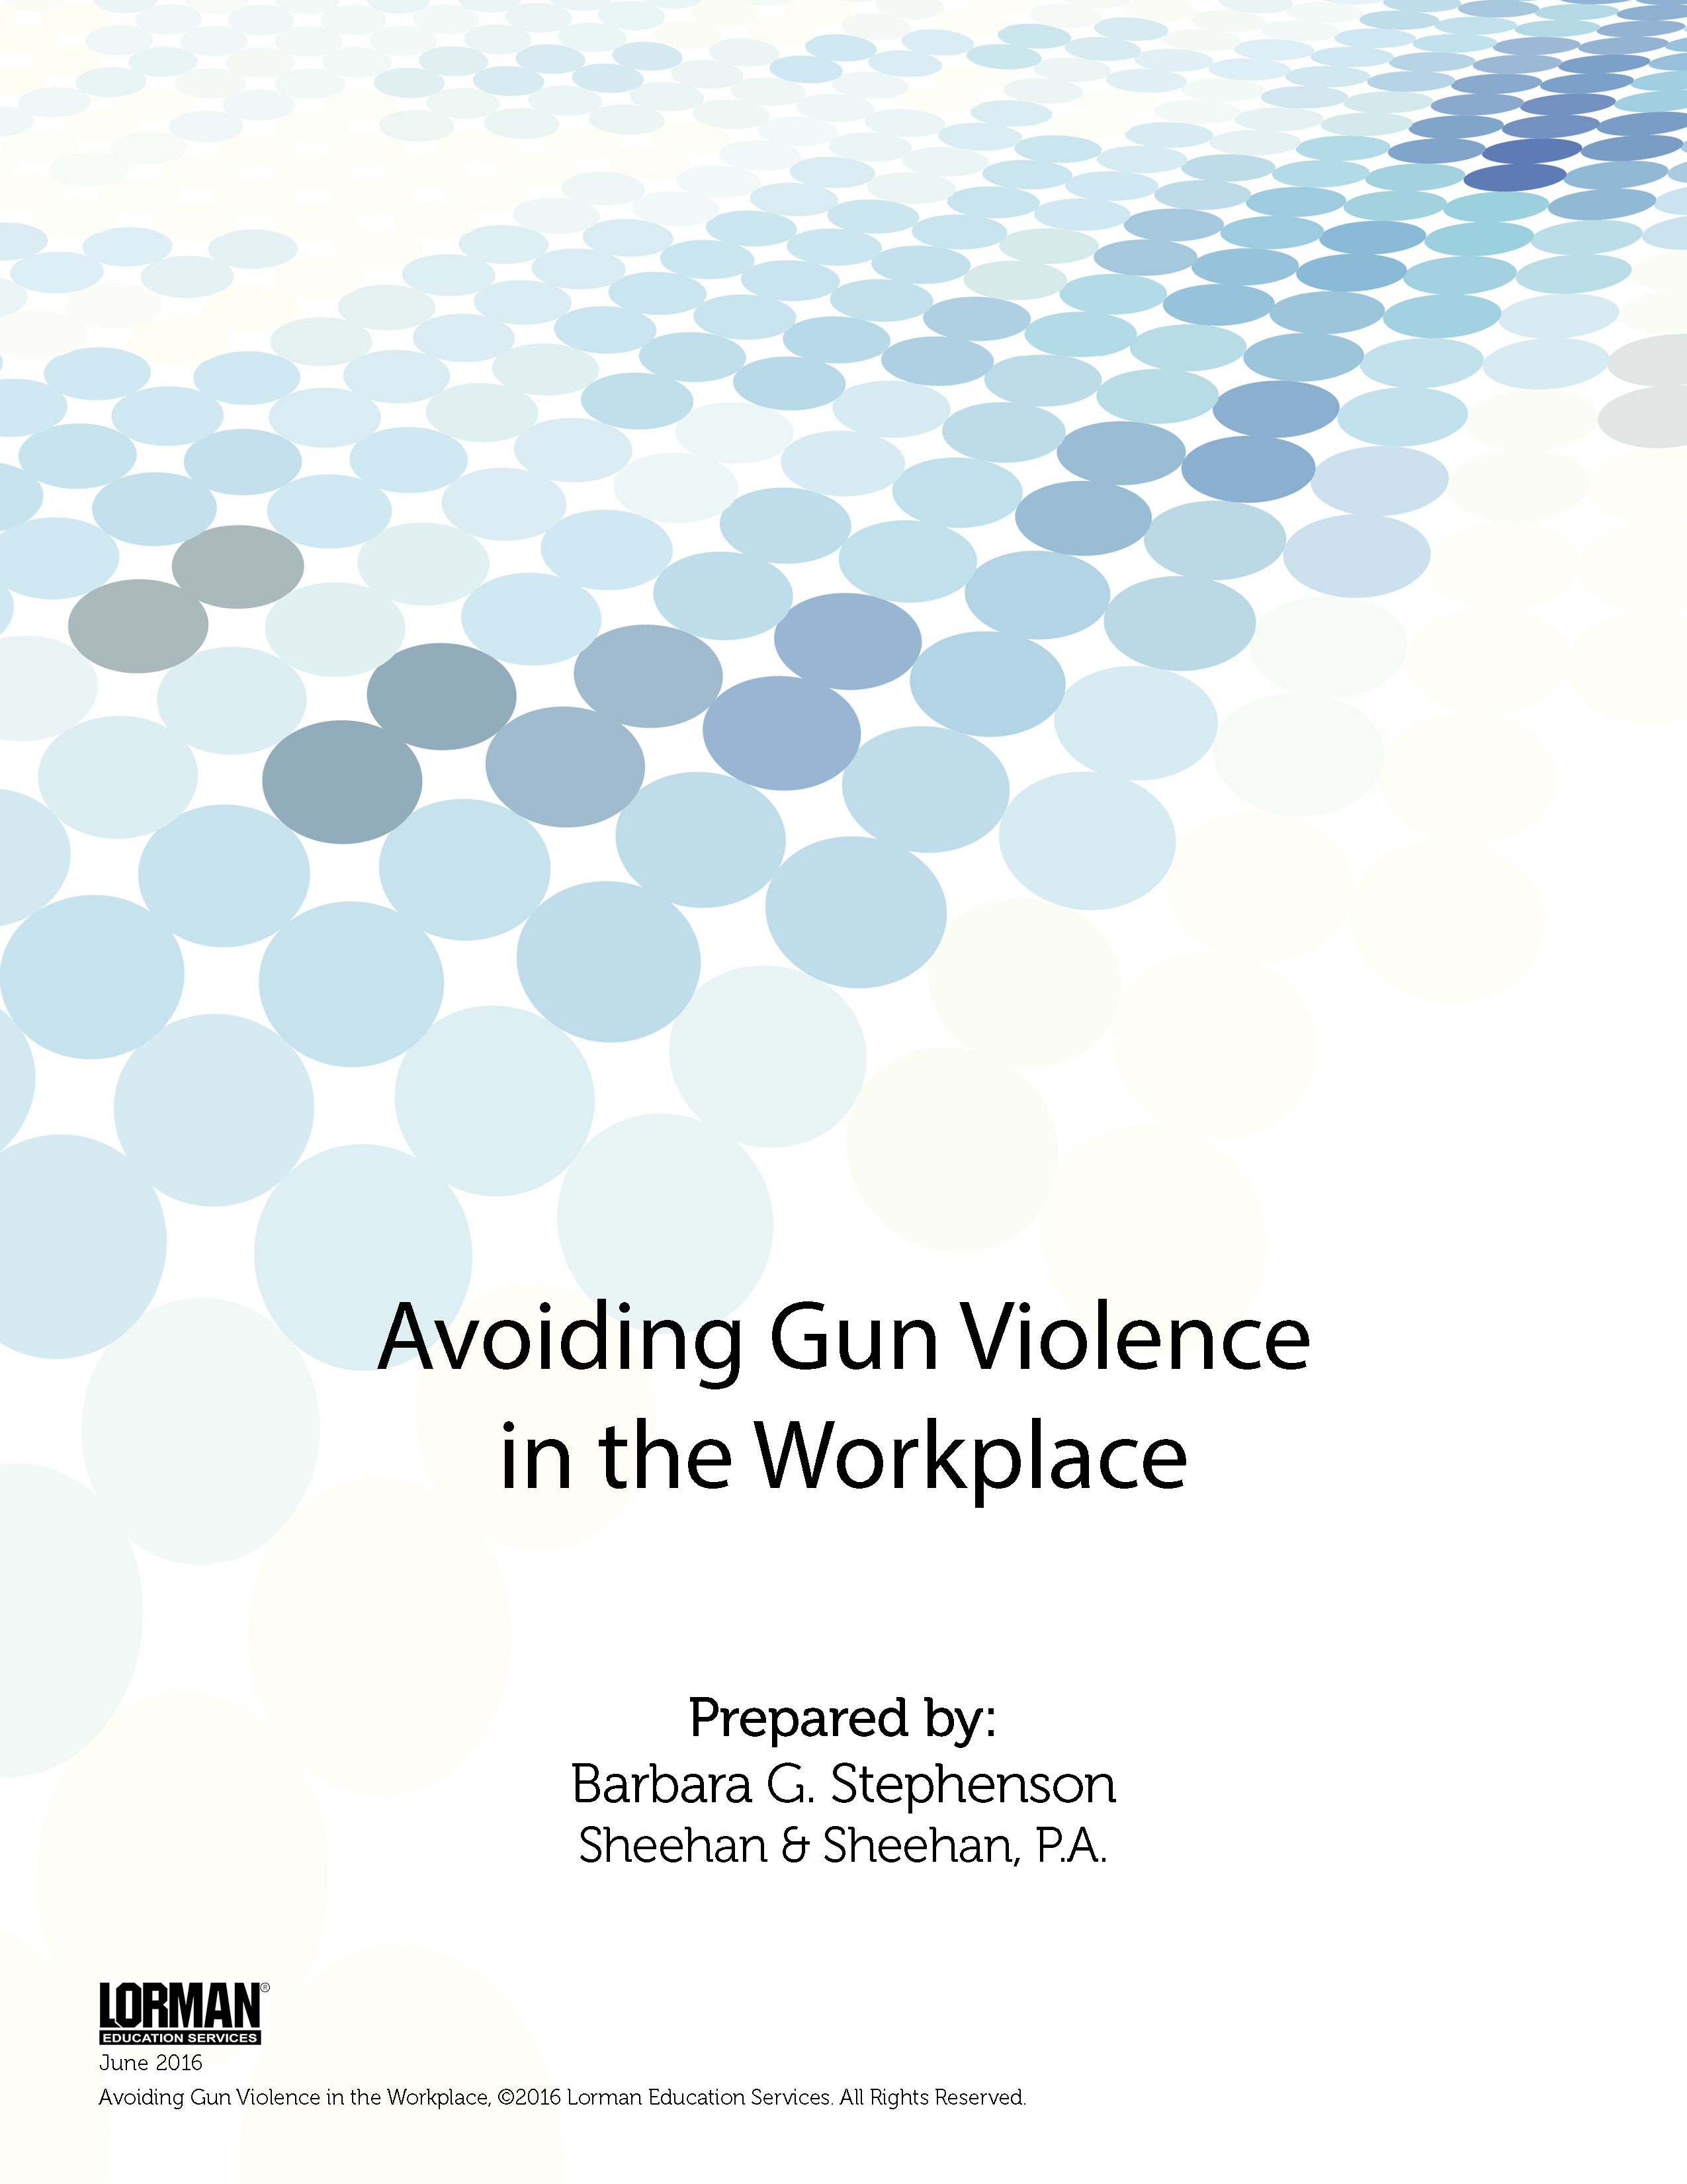 Avoiding Gun Violence in the Workplace